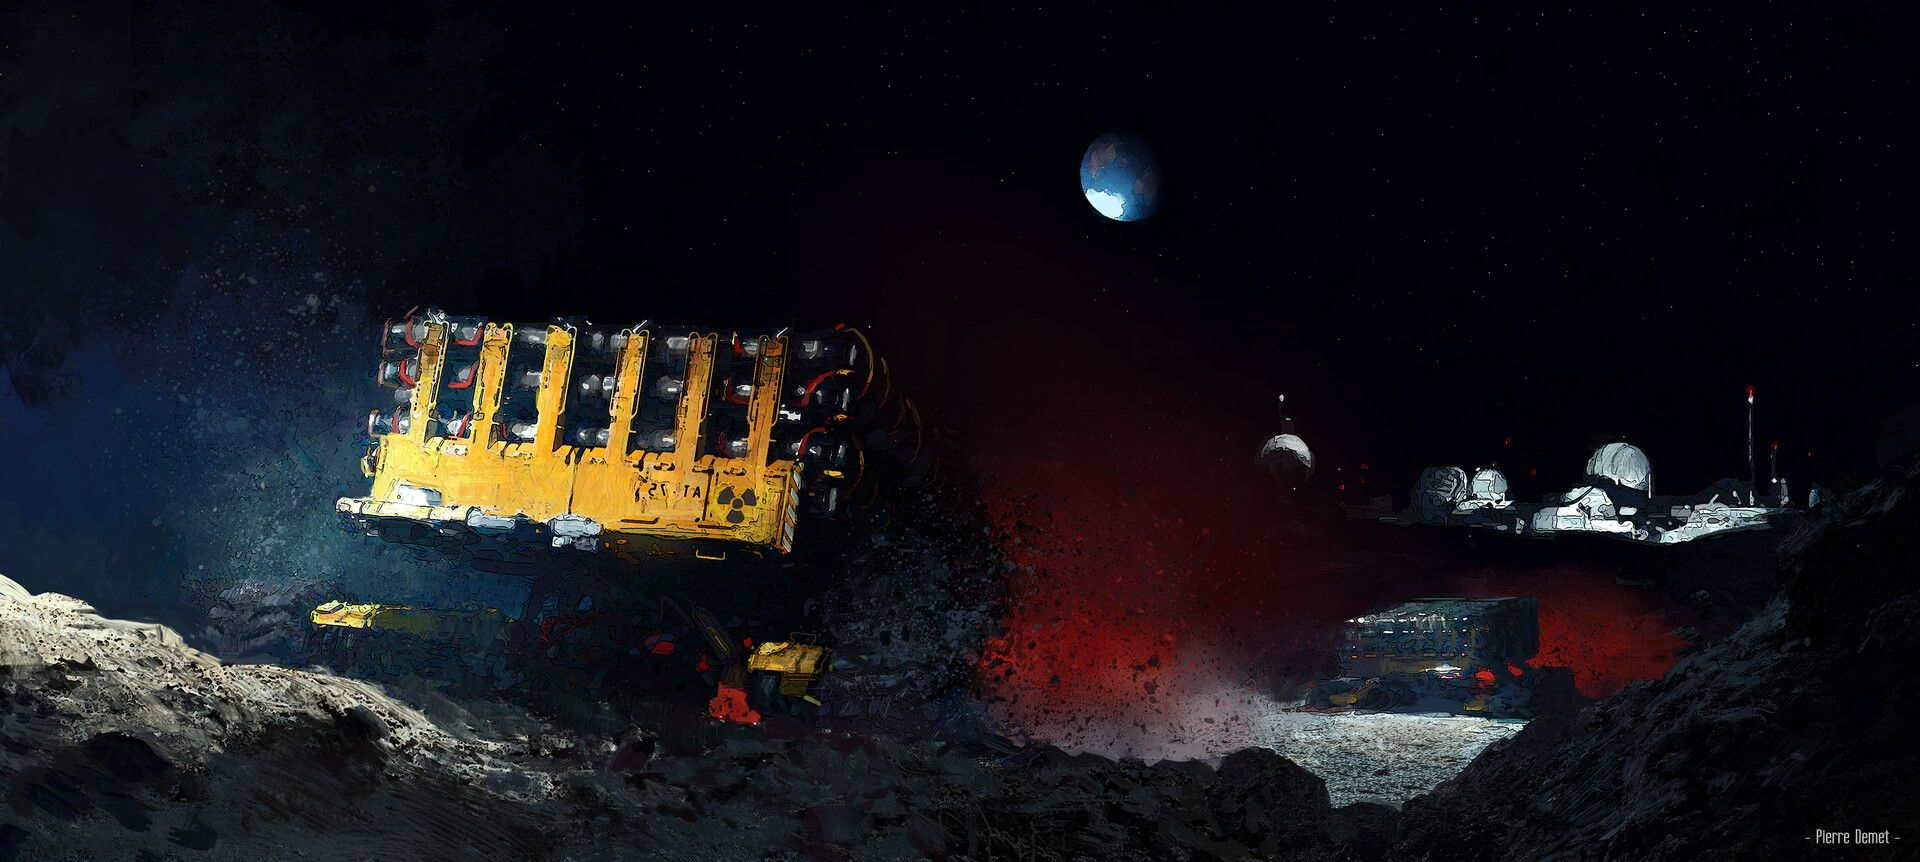 The Dark Wastes of the Moon by Pierre Demet